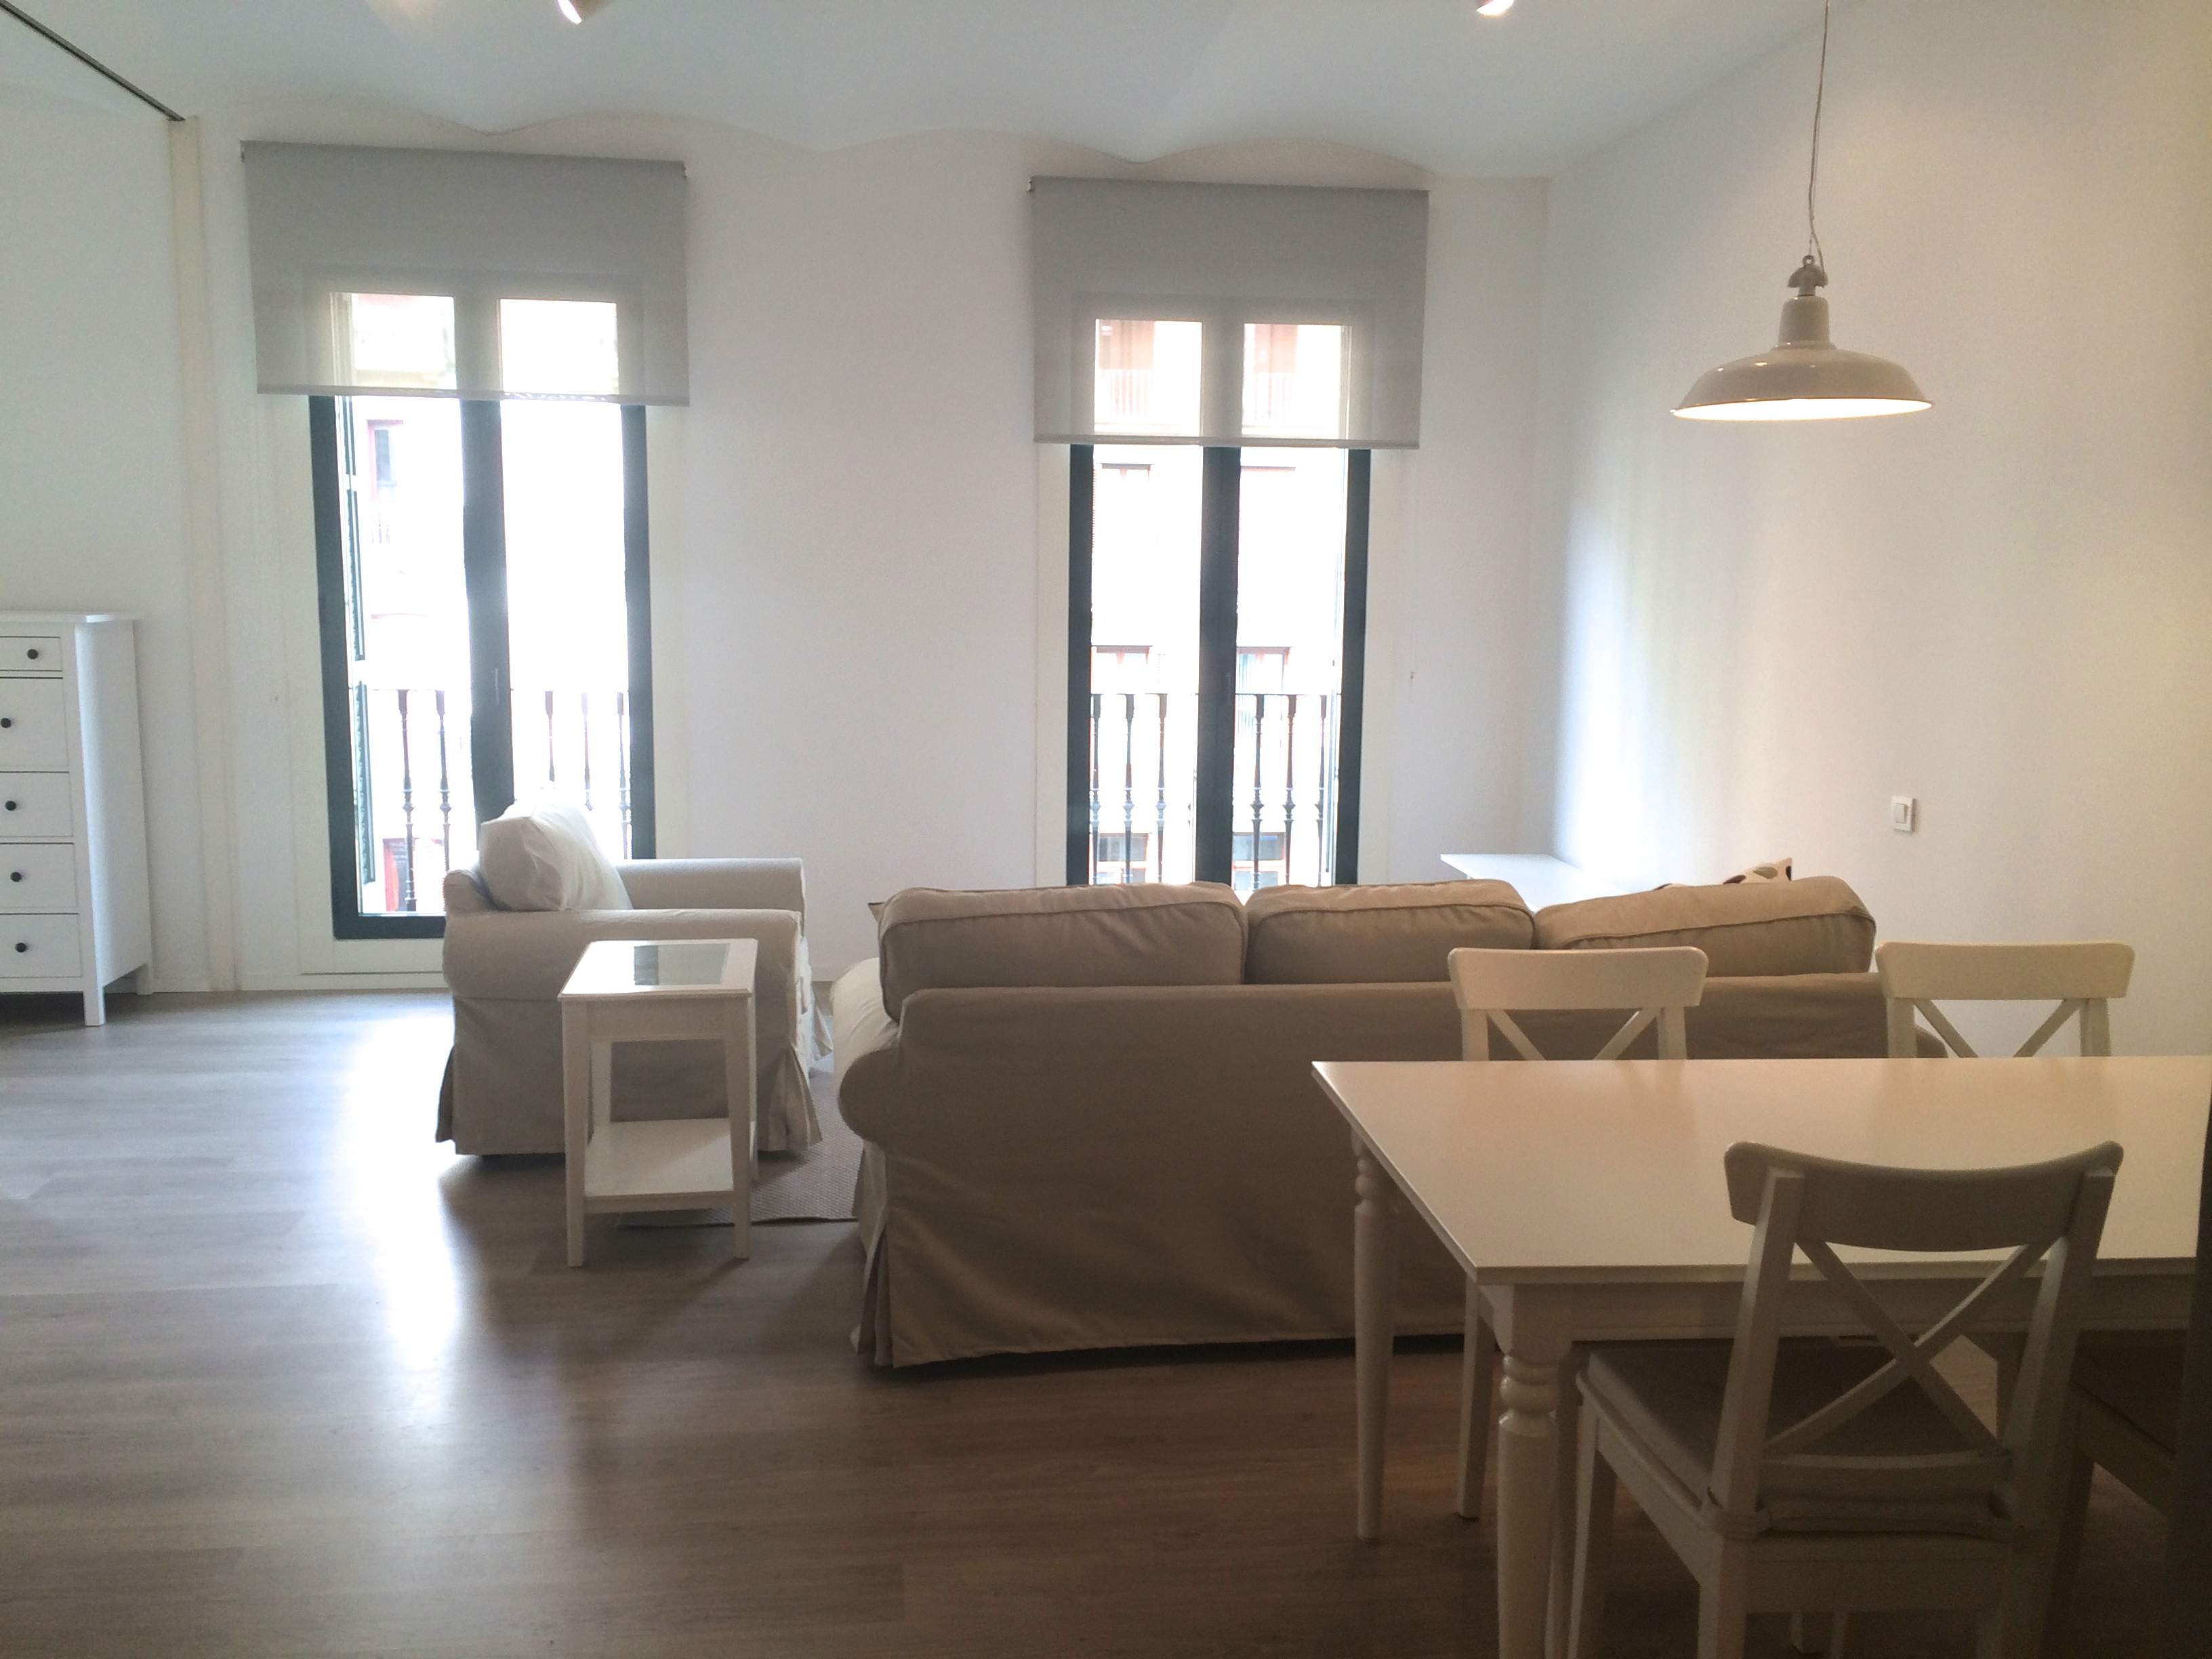 2 bedroom furnished apartment for rent in eixample barcelona for Apartments for rent two bedroom